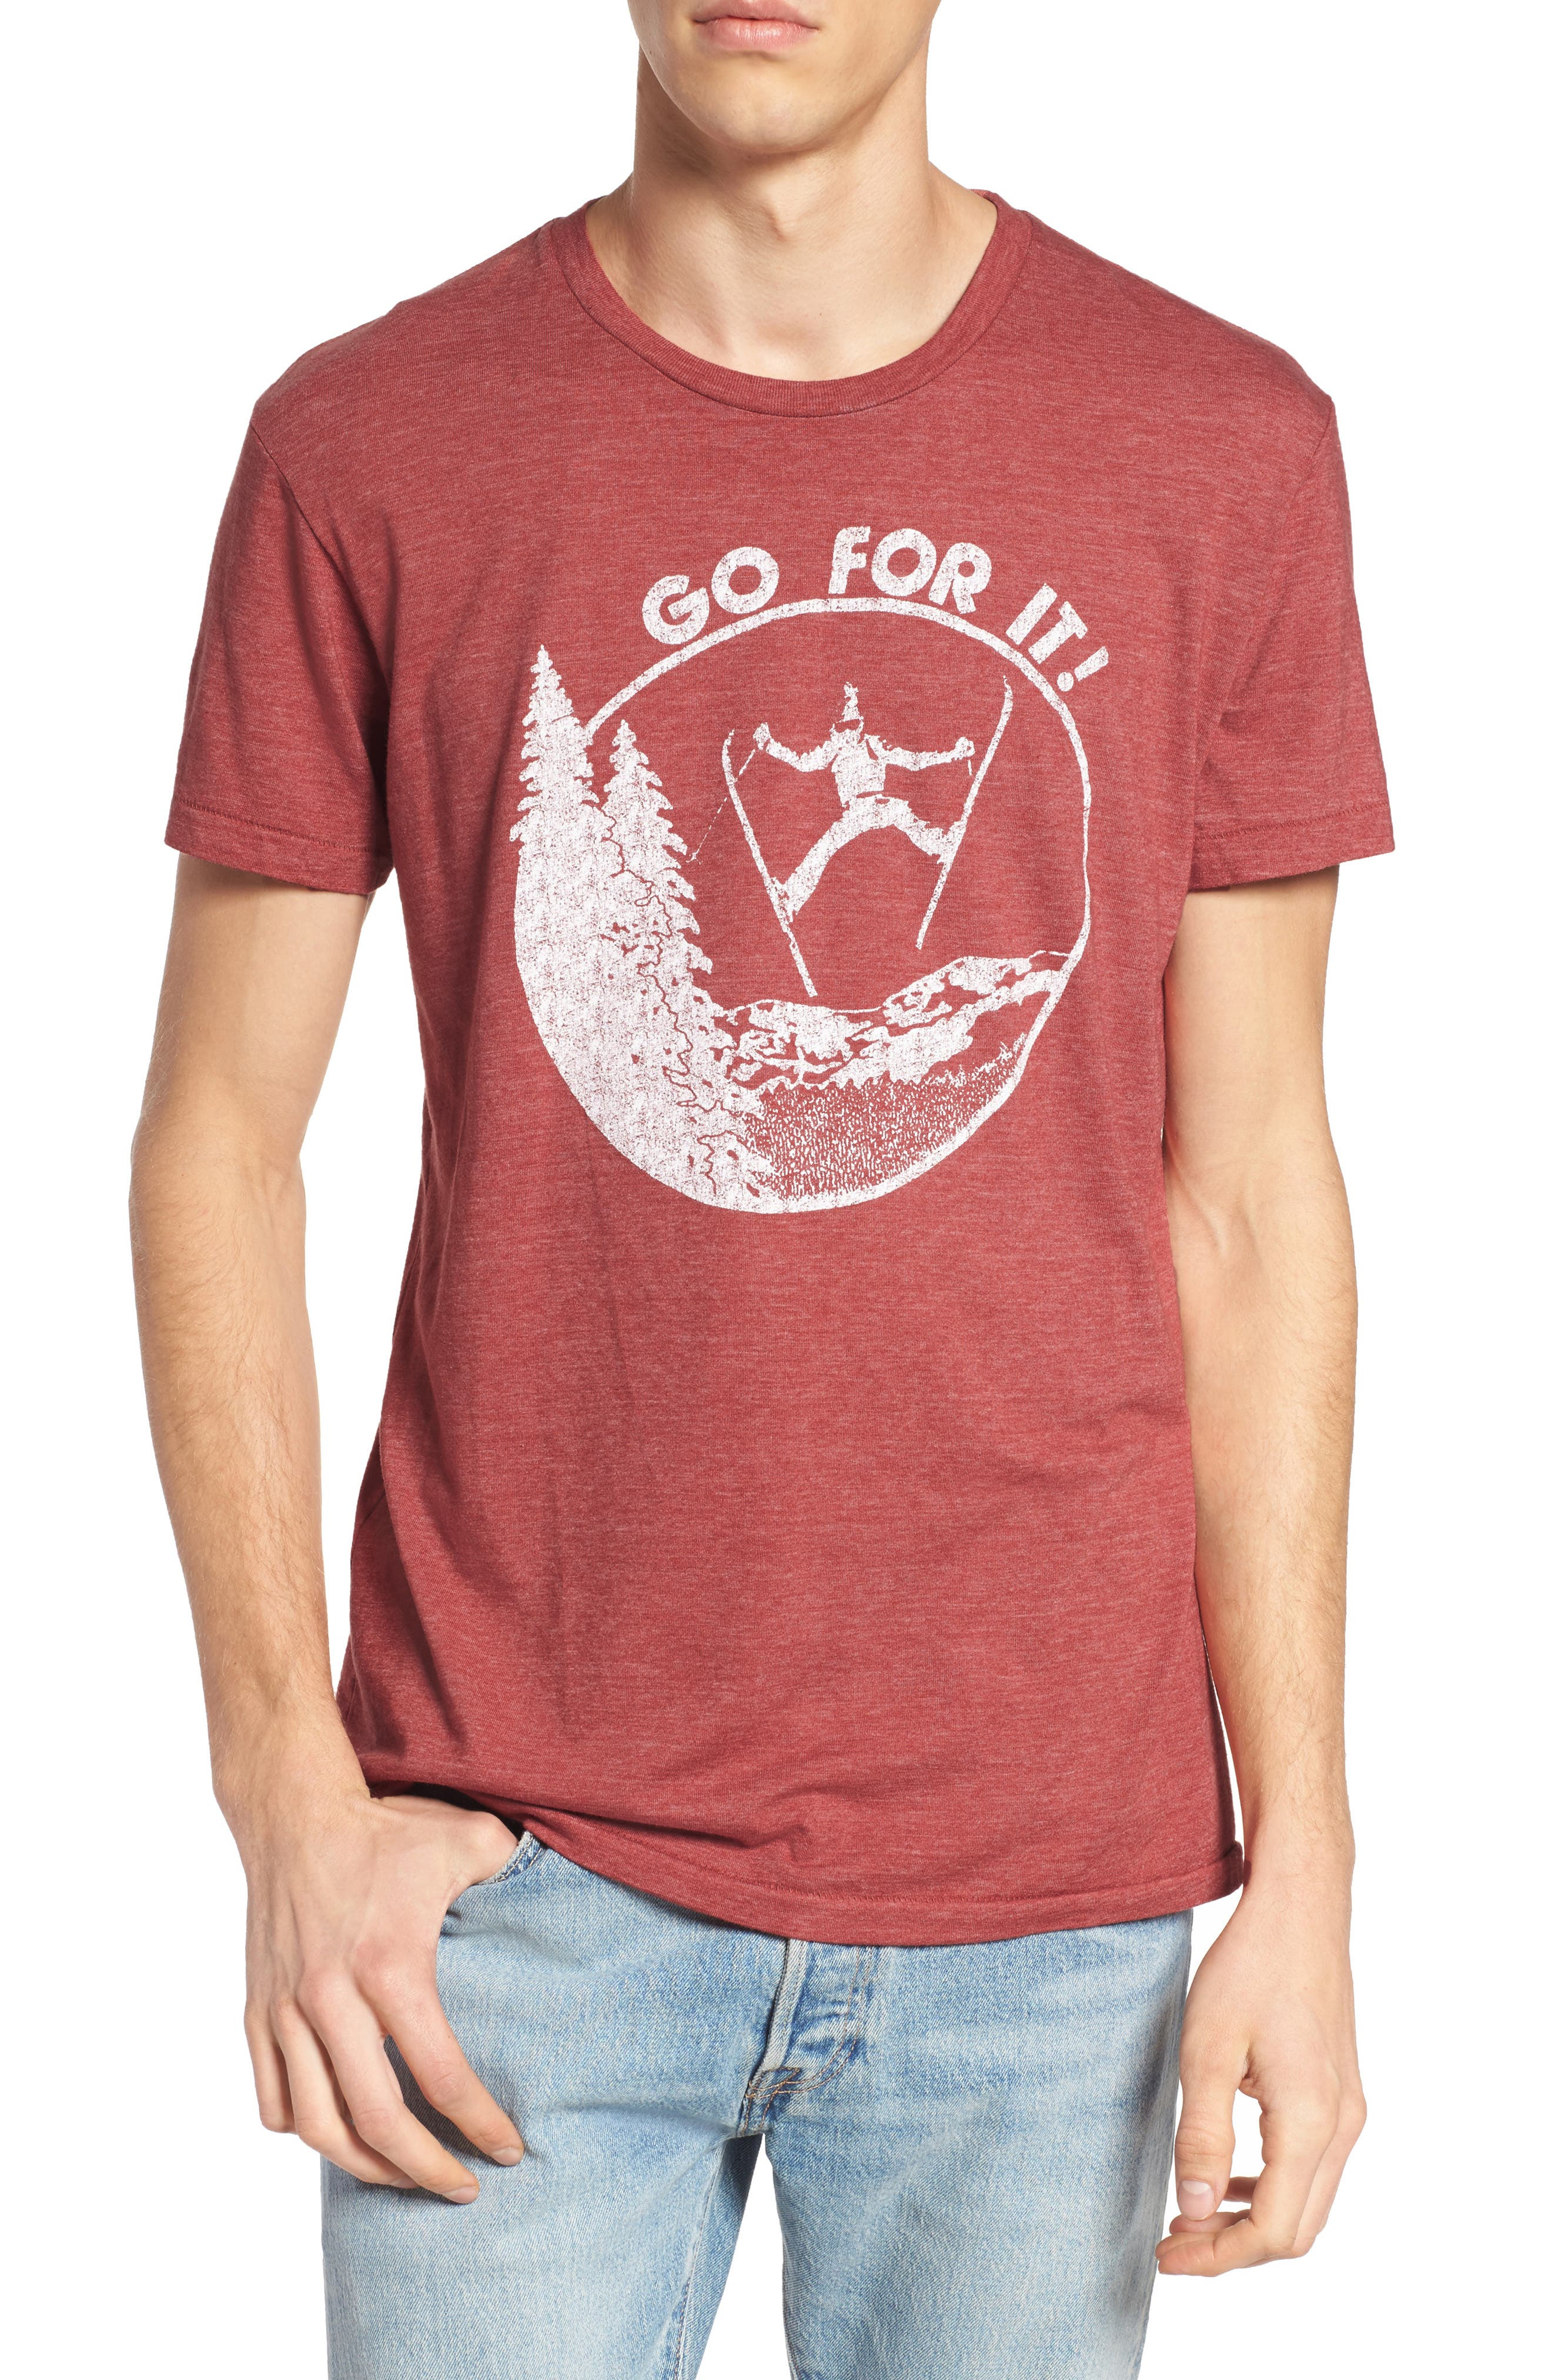 Go for It Graphic T-Shirt,                             Main thumbnail 1, color,                             610